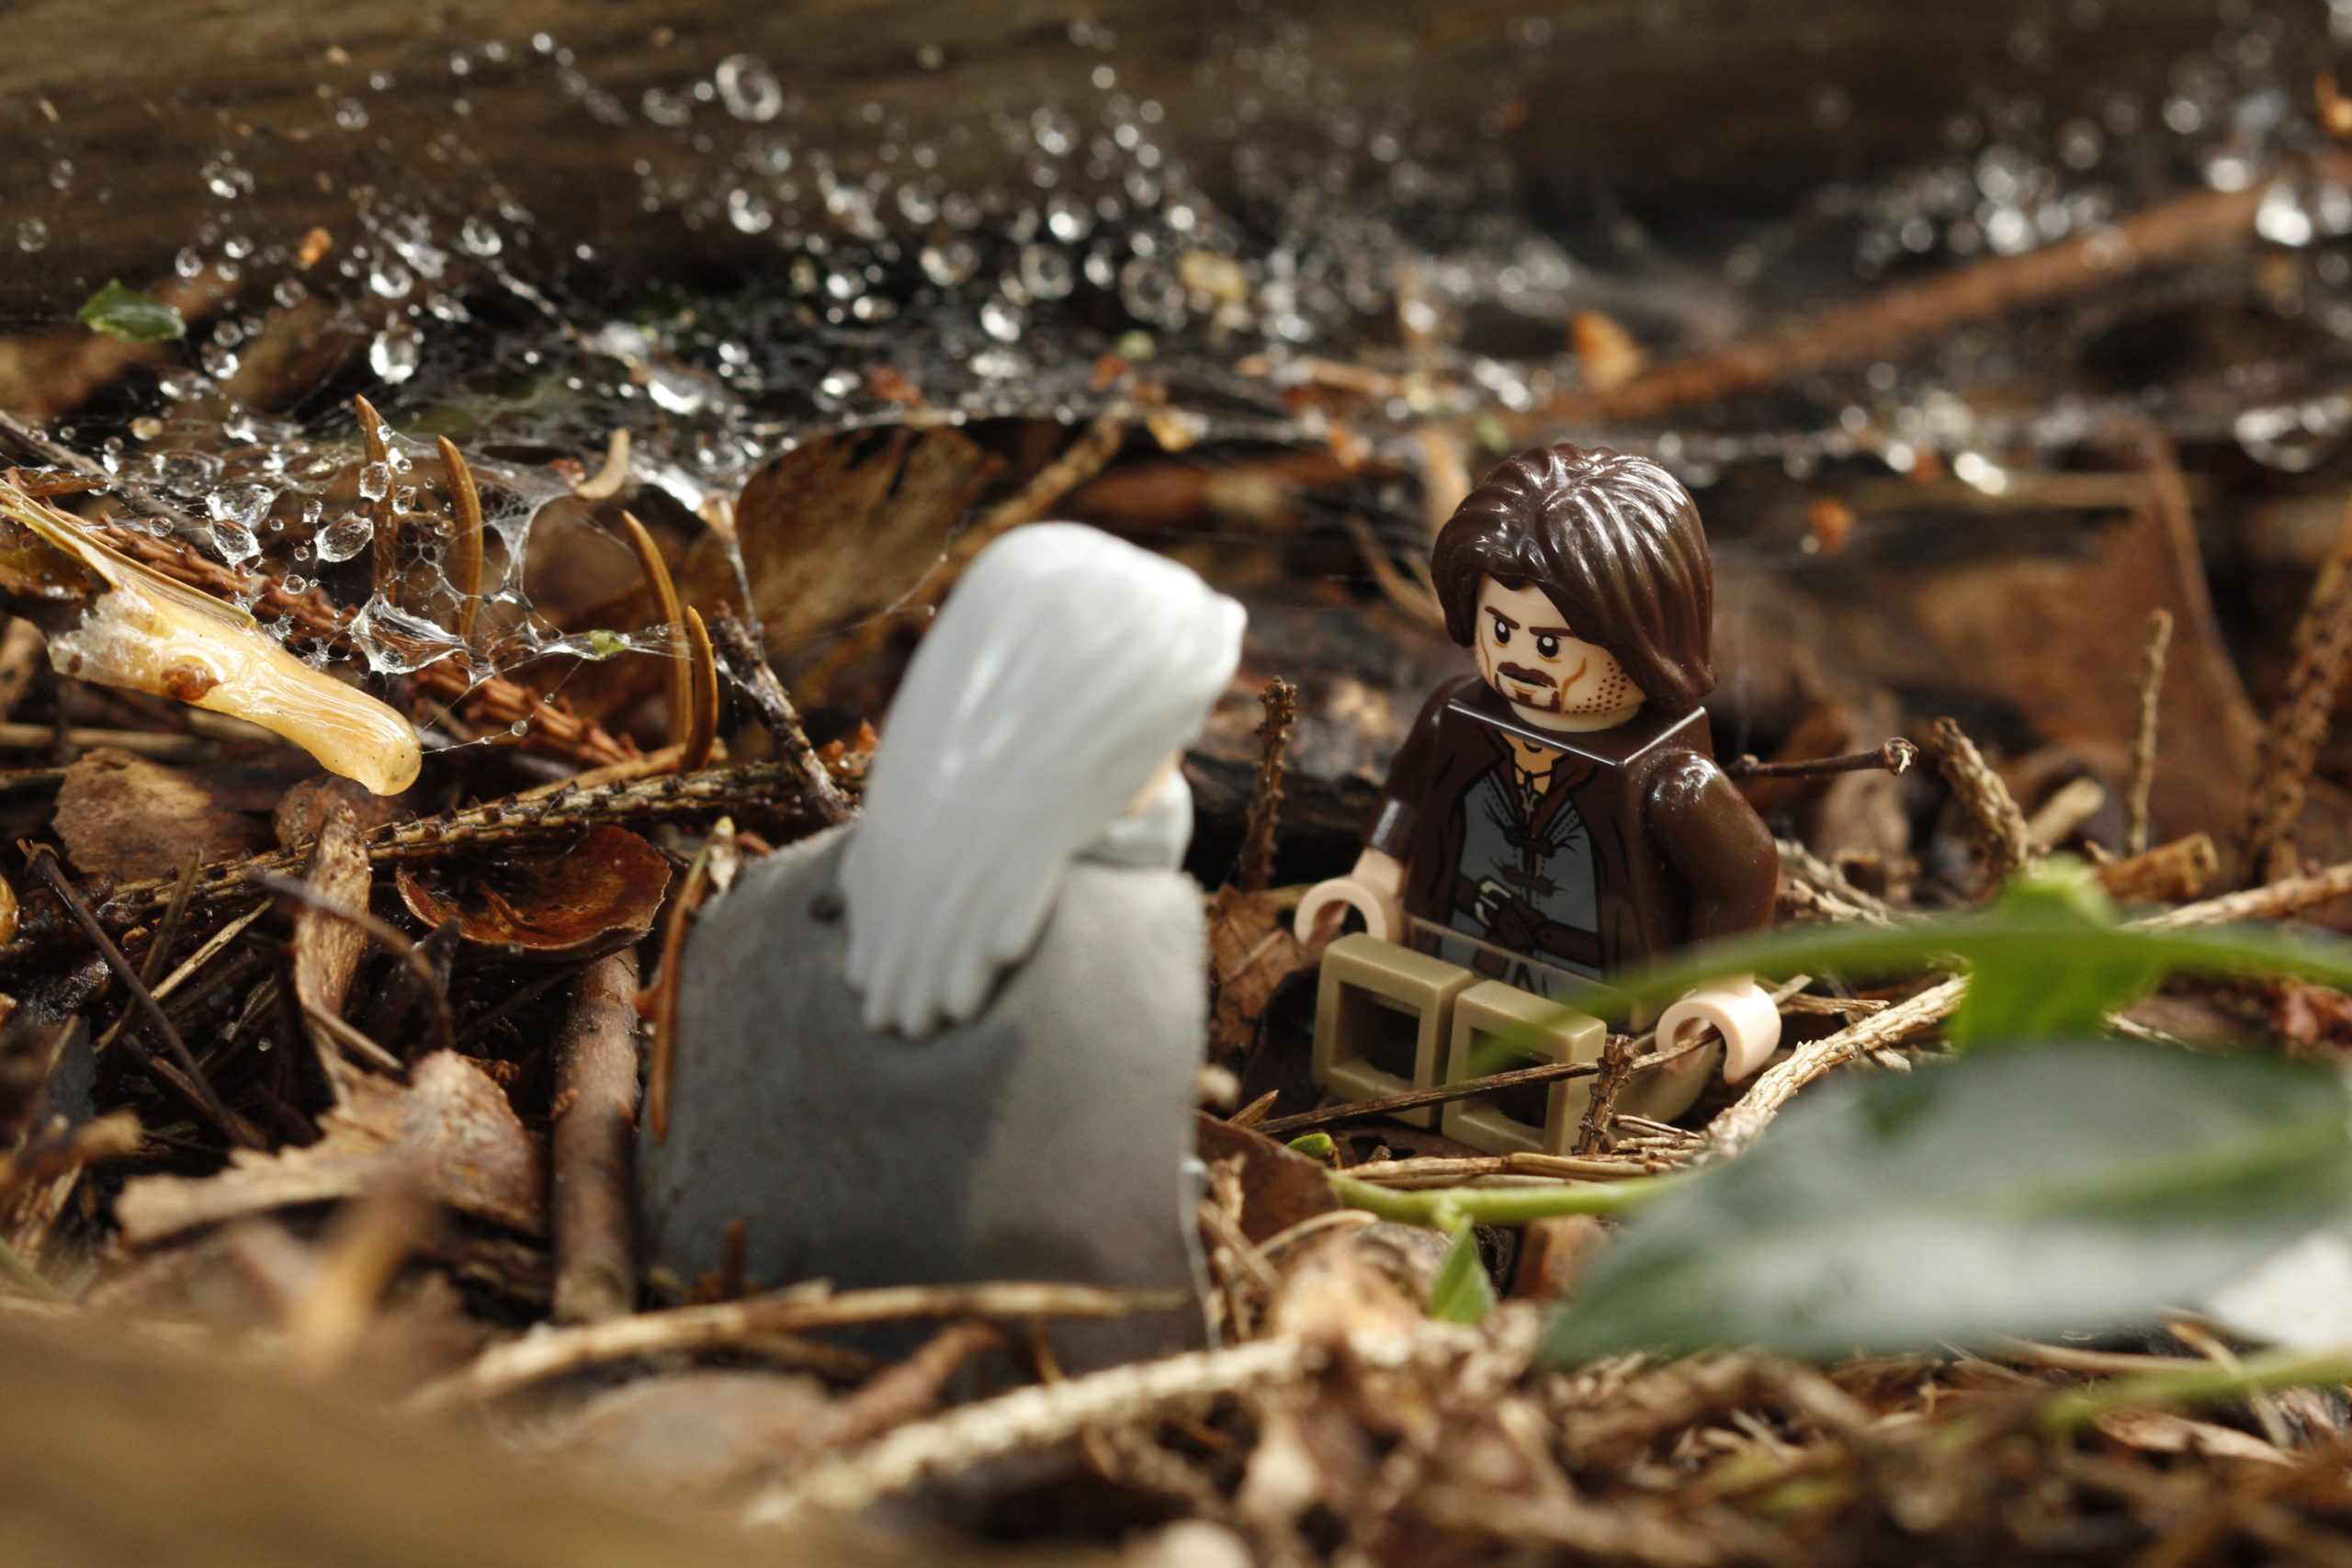 lego inspiring creativity: a scene from Lord of the Rings